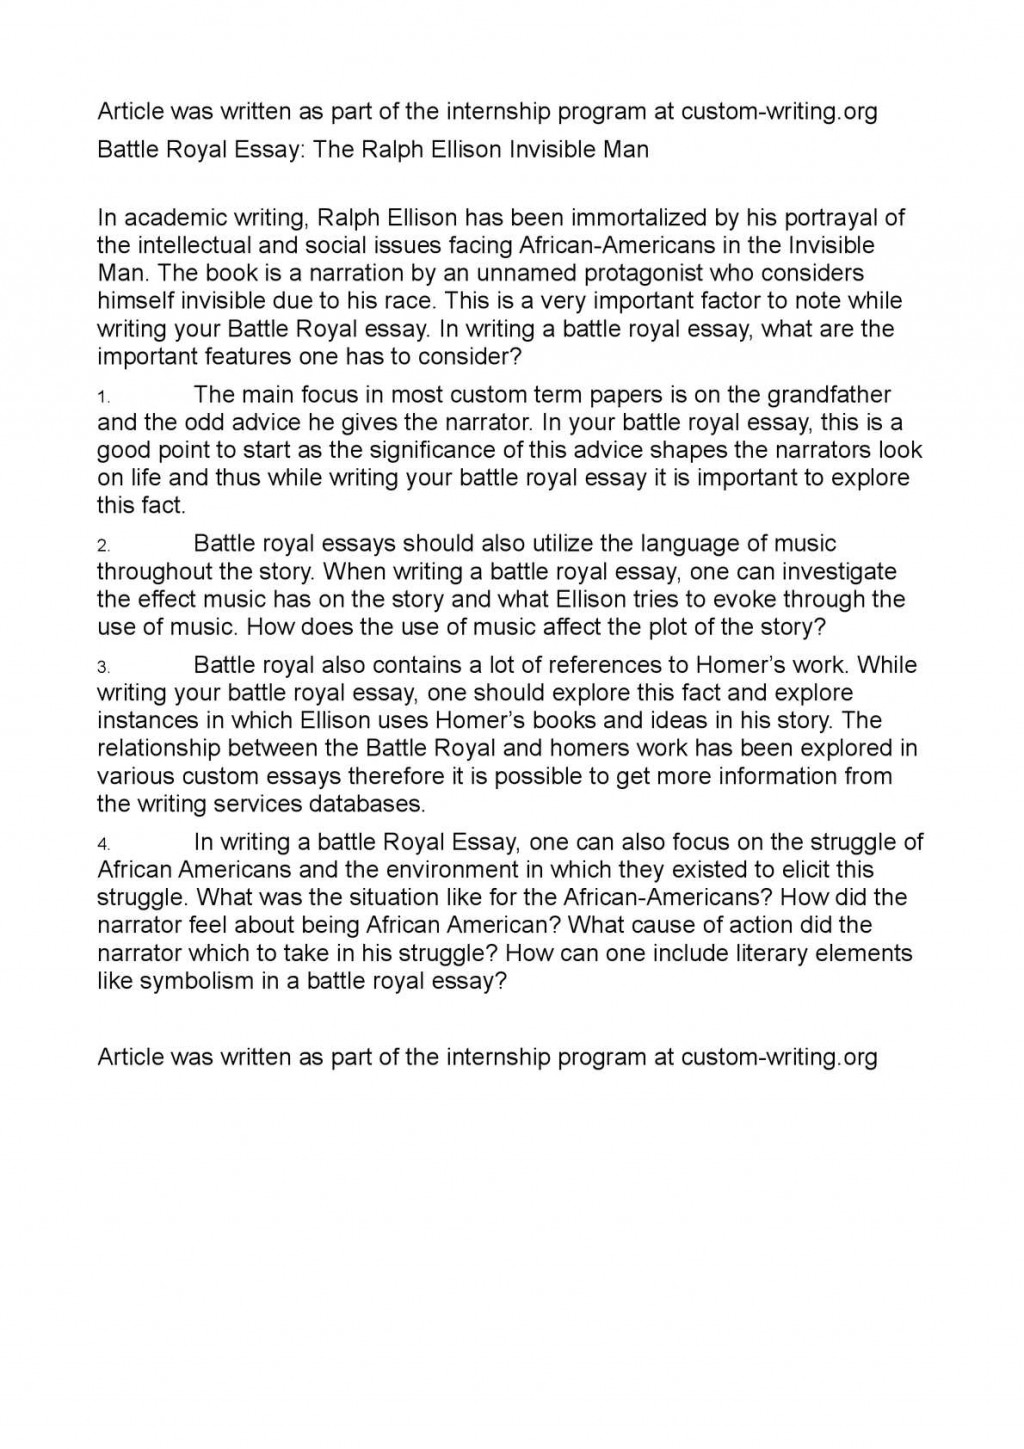 008 Battle Royal Essay Questions Summary Royale Research Paper Topics Argumentative20 Striking Literature American Ideas English History Large